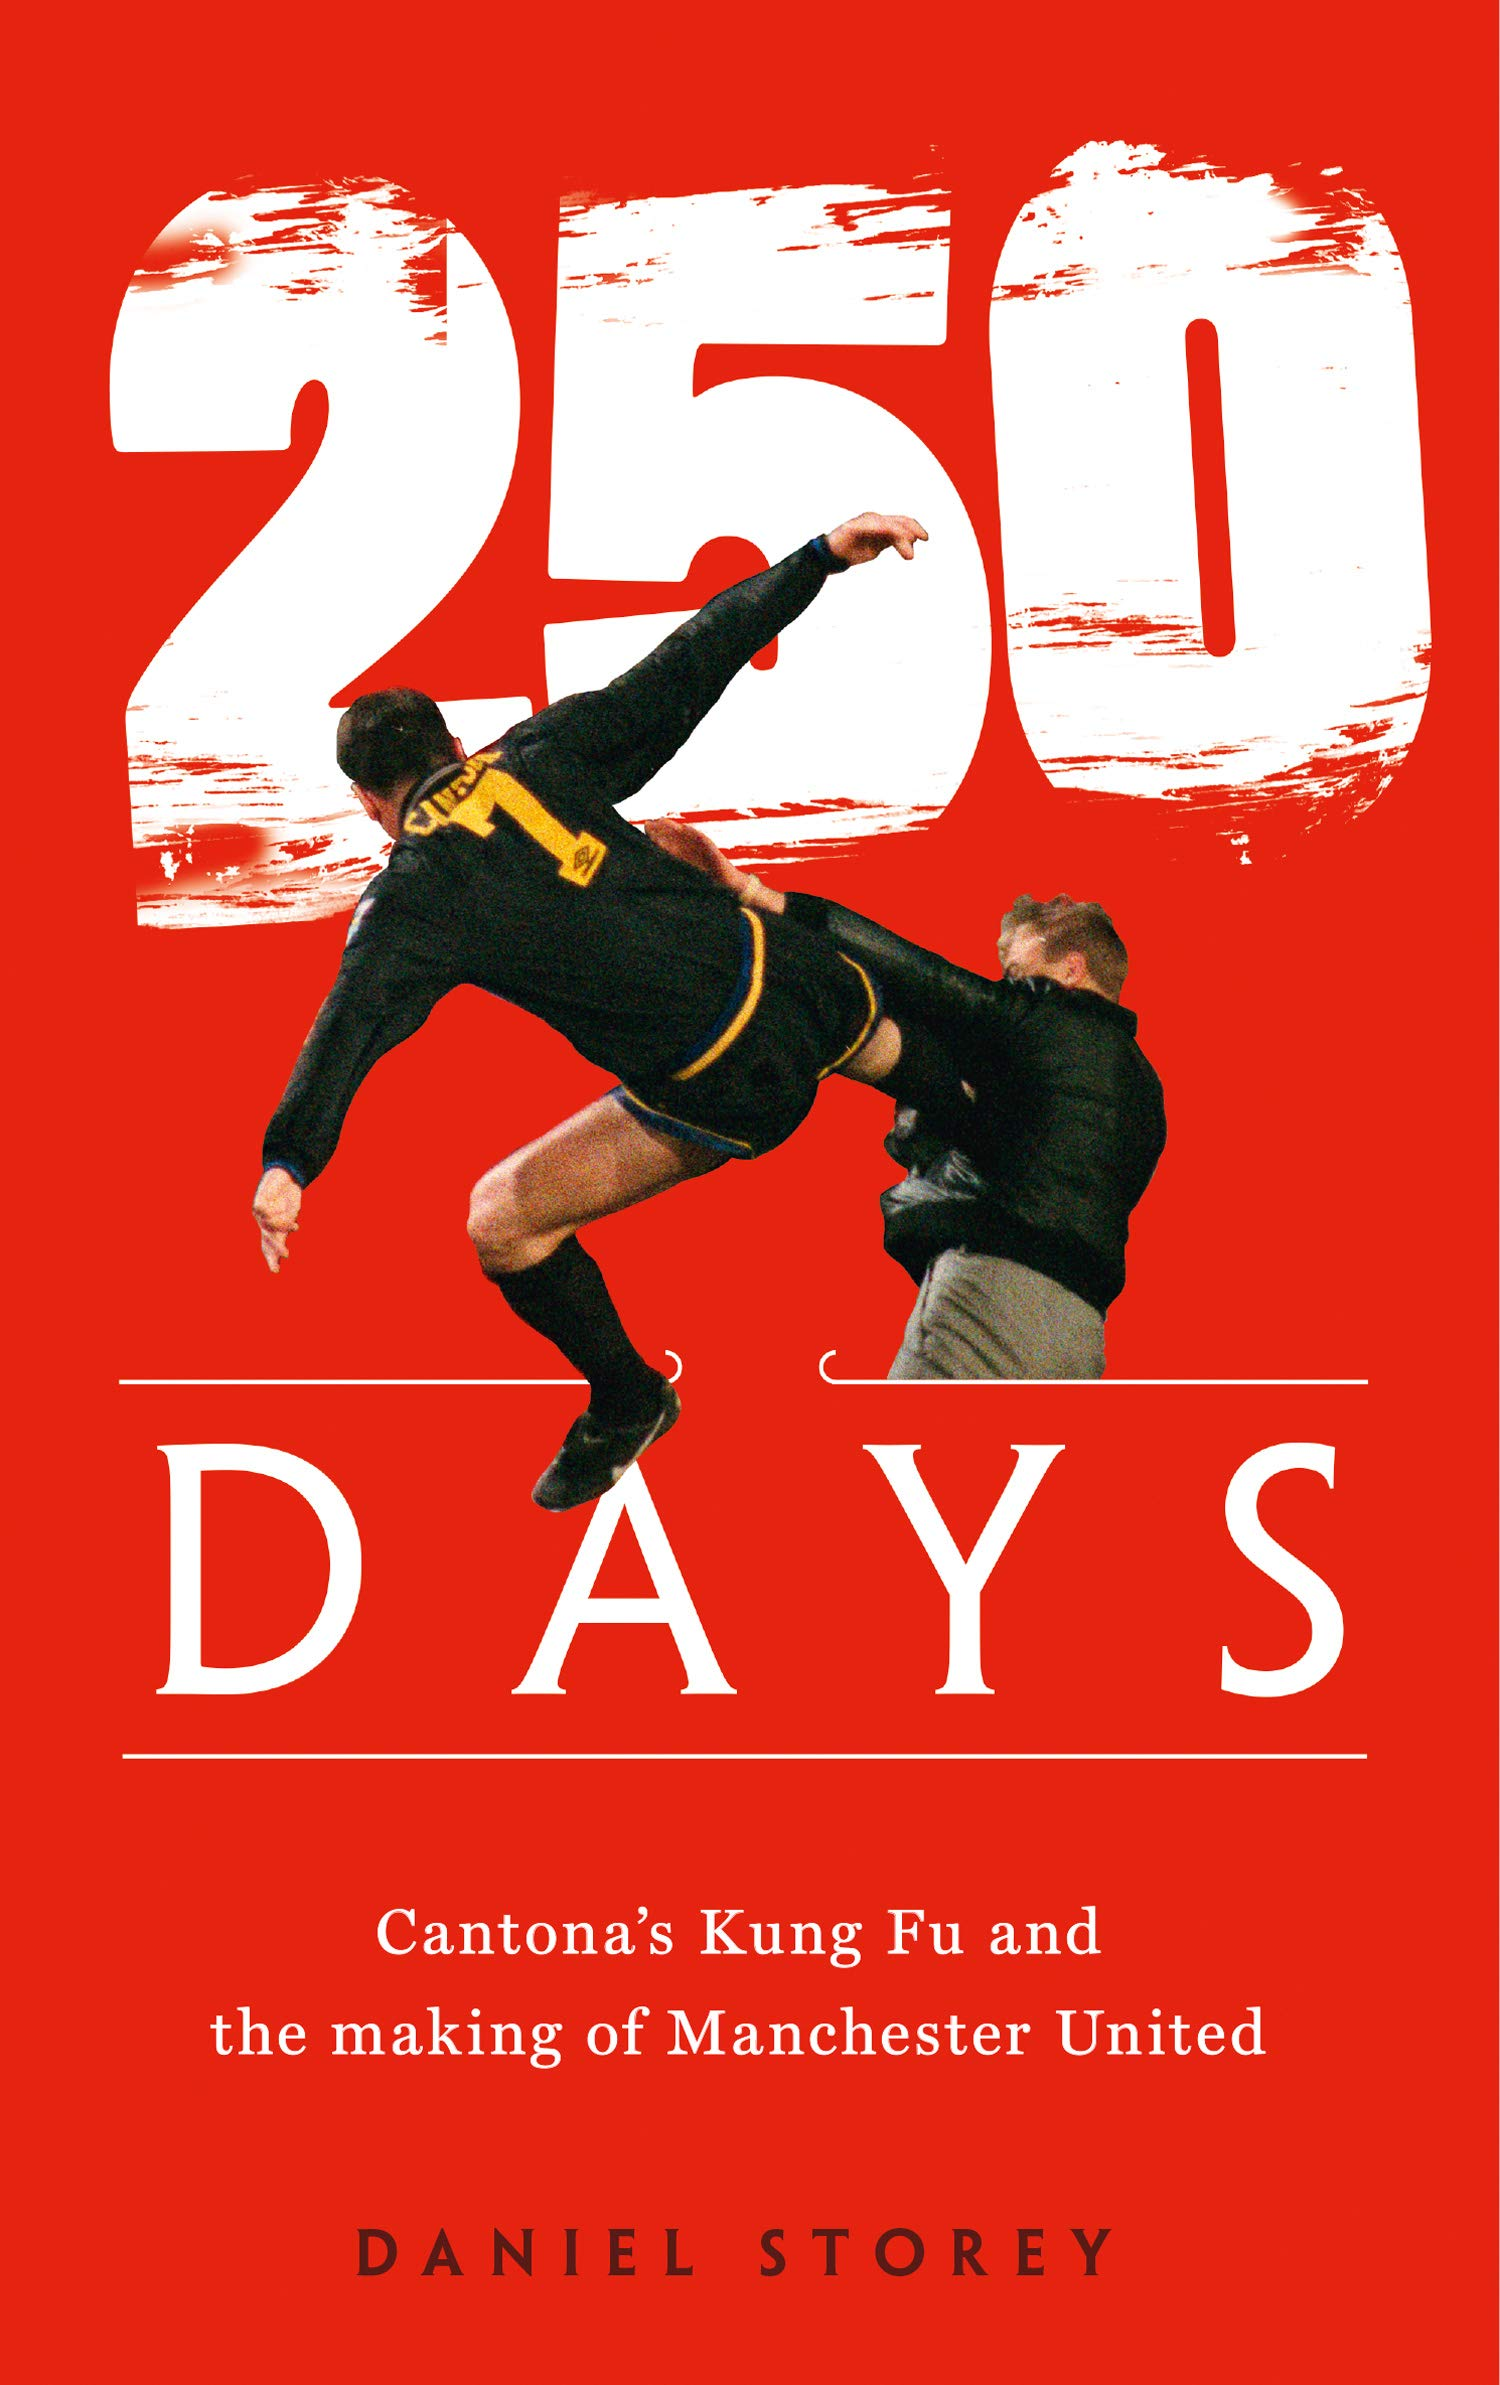 Image Of250 Days: Cantona's Kung Fu And The Making Of Man U (English Edition)